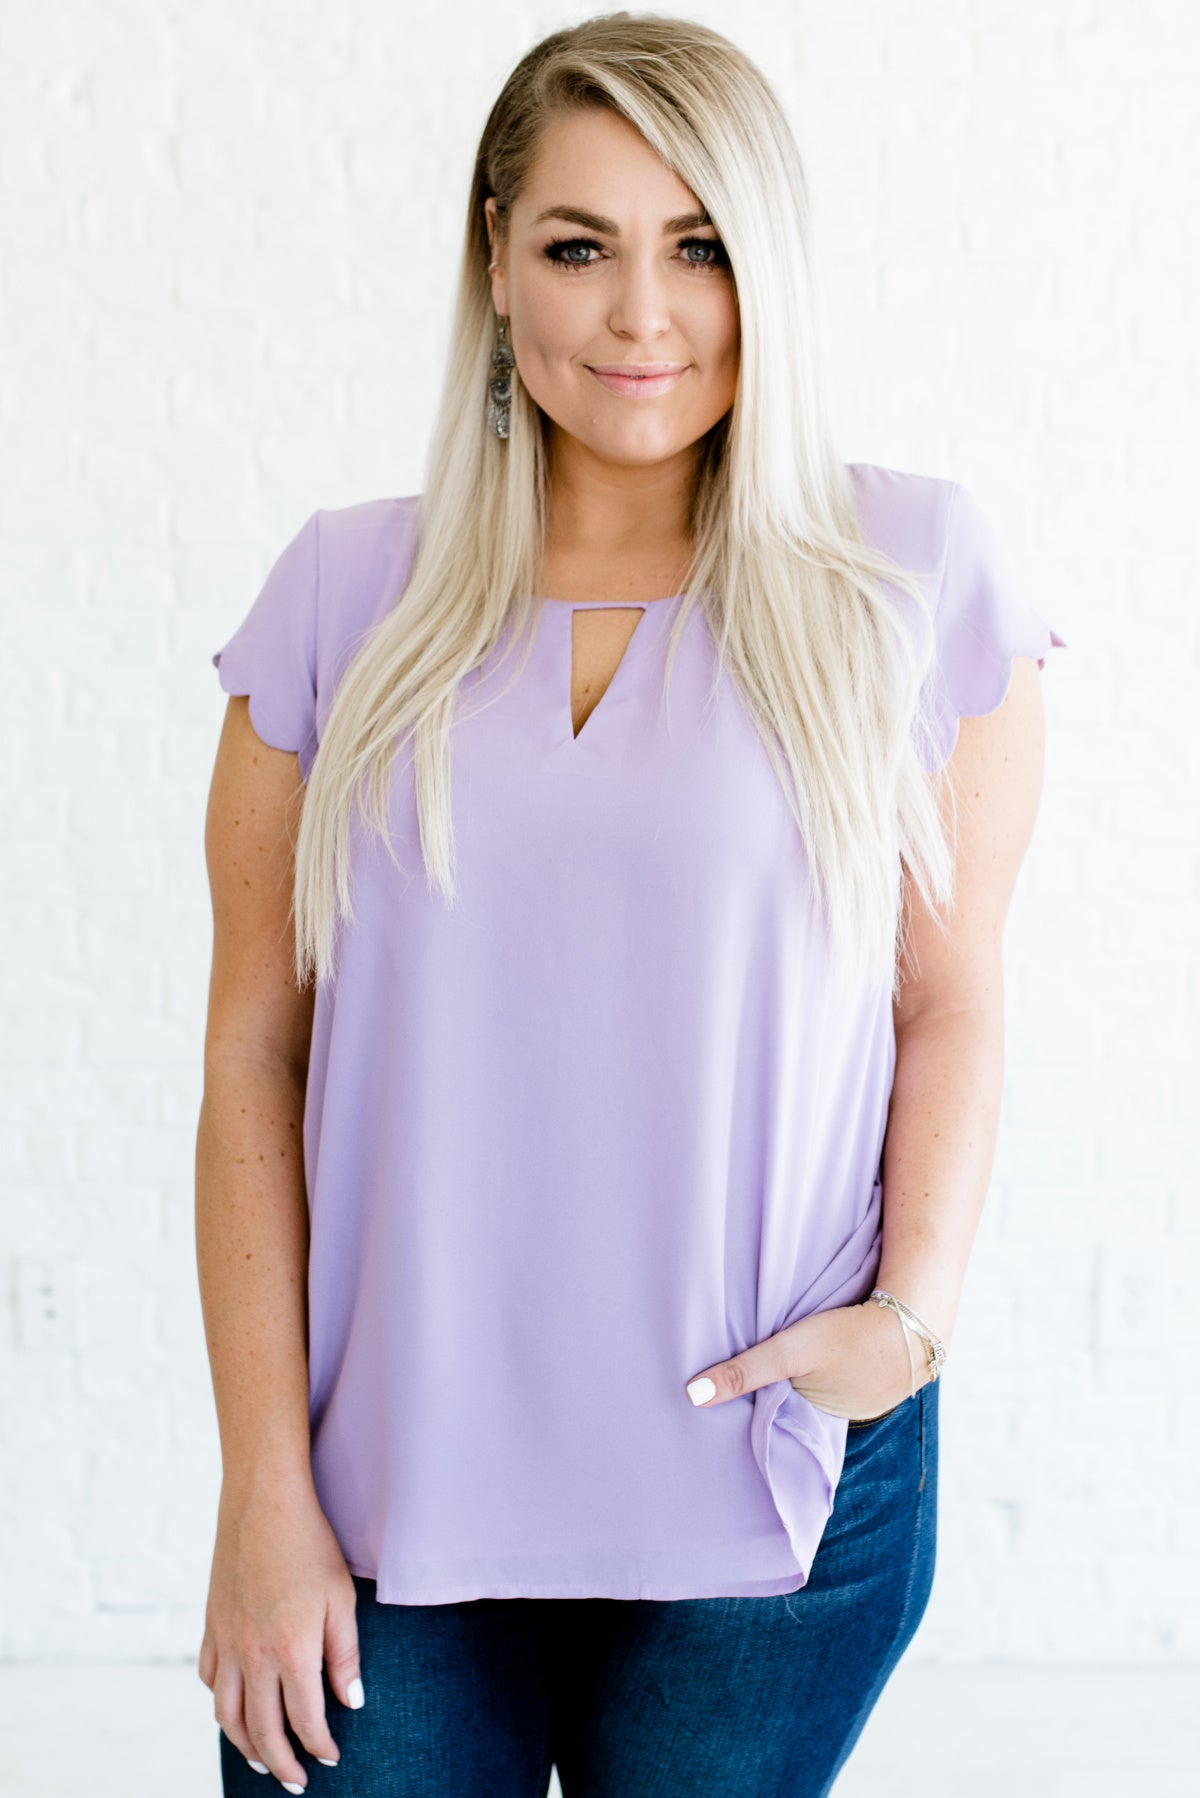 Lilac Purple Plus Size Boutique High-Quality Blouses for Women